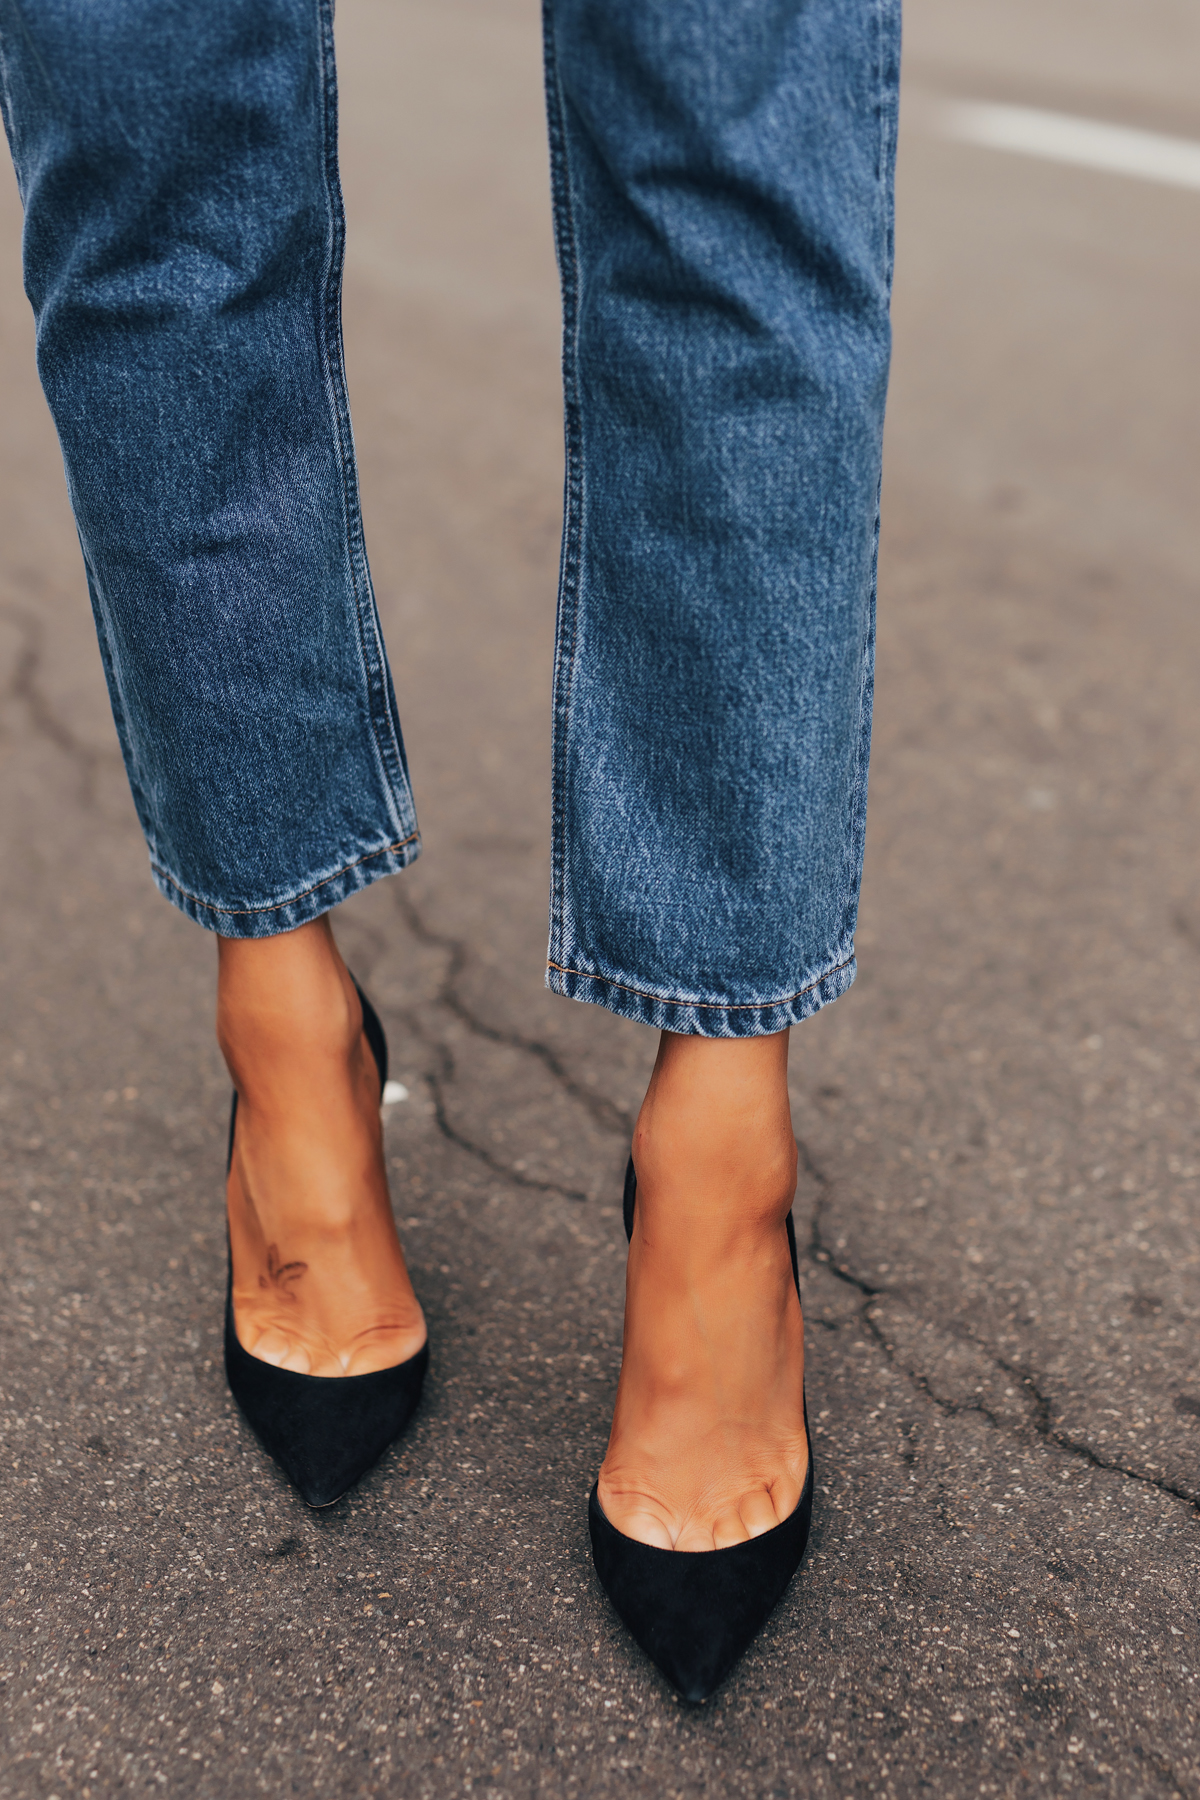 Fashion Jackson Wearing Everlane Relaxed Jeans Black Pumps